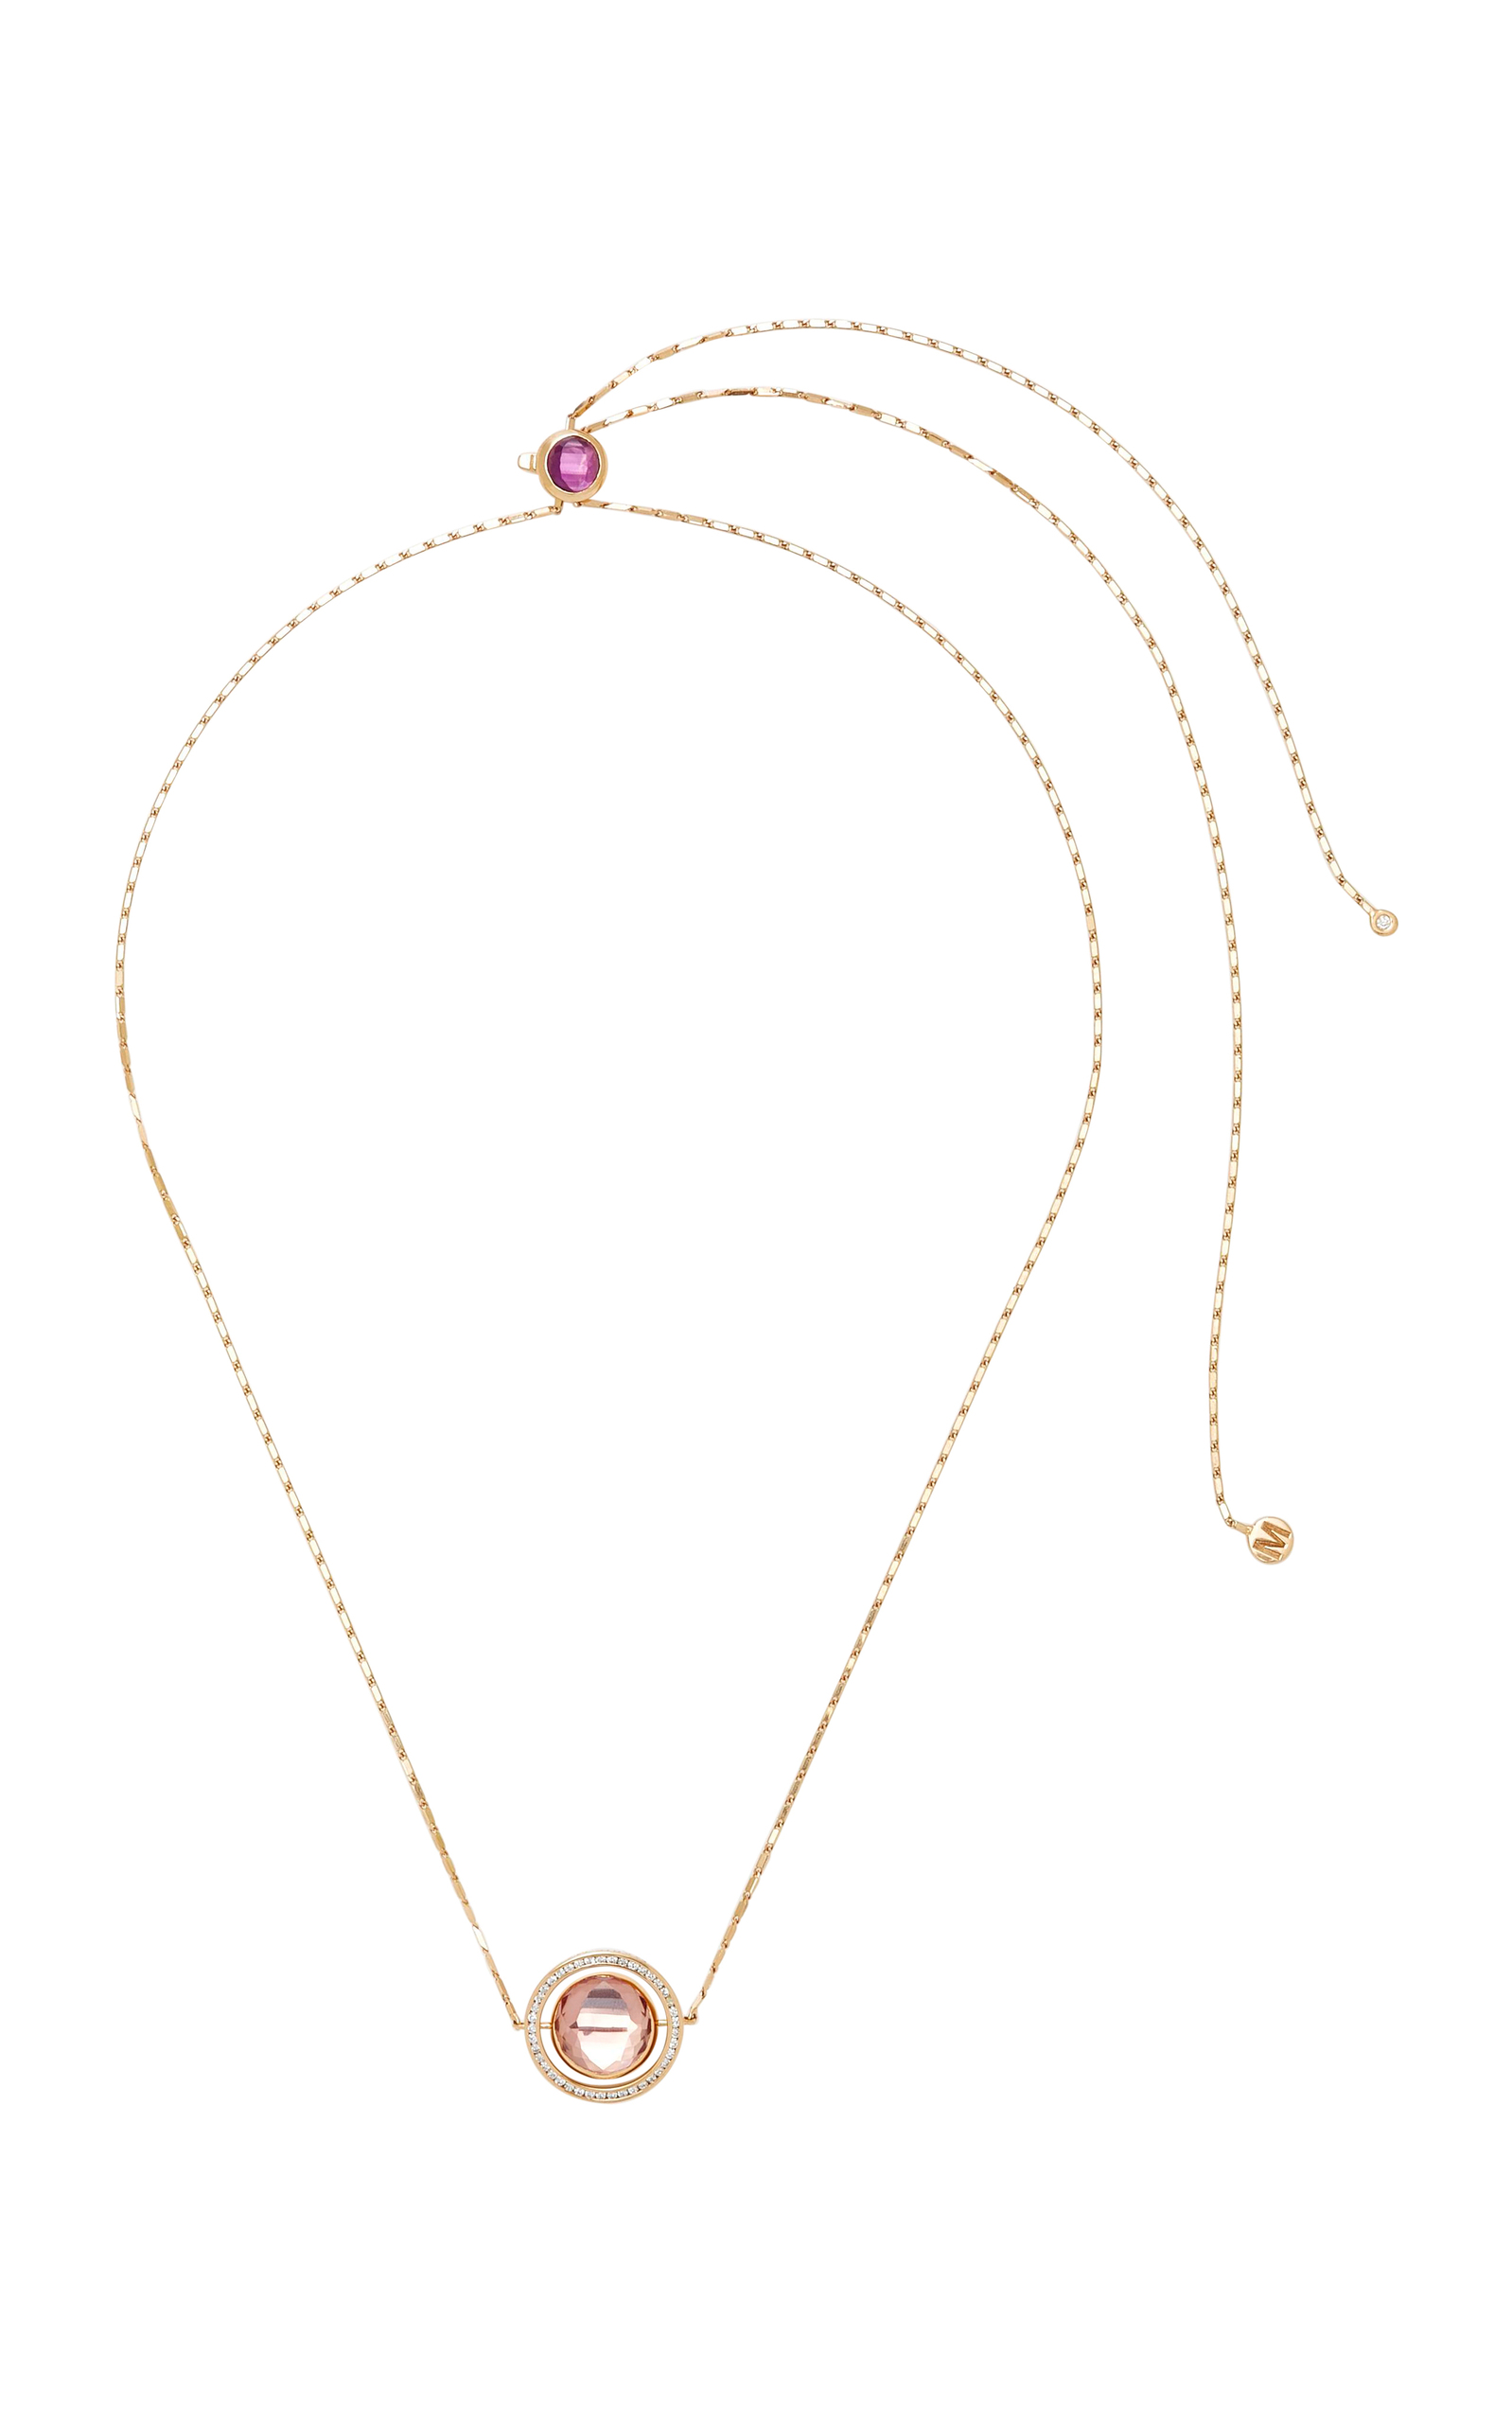 MARIE MAS 18K ROSE GOLD AND MULTI-STONE SWIVELING NECKLACE